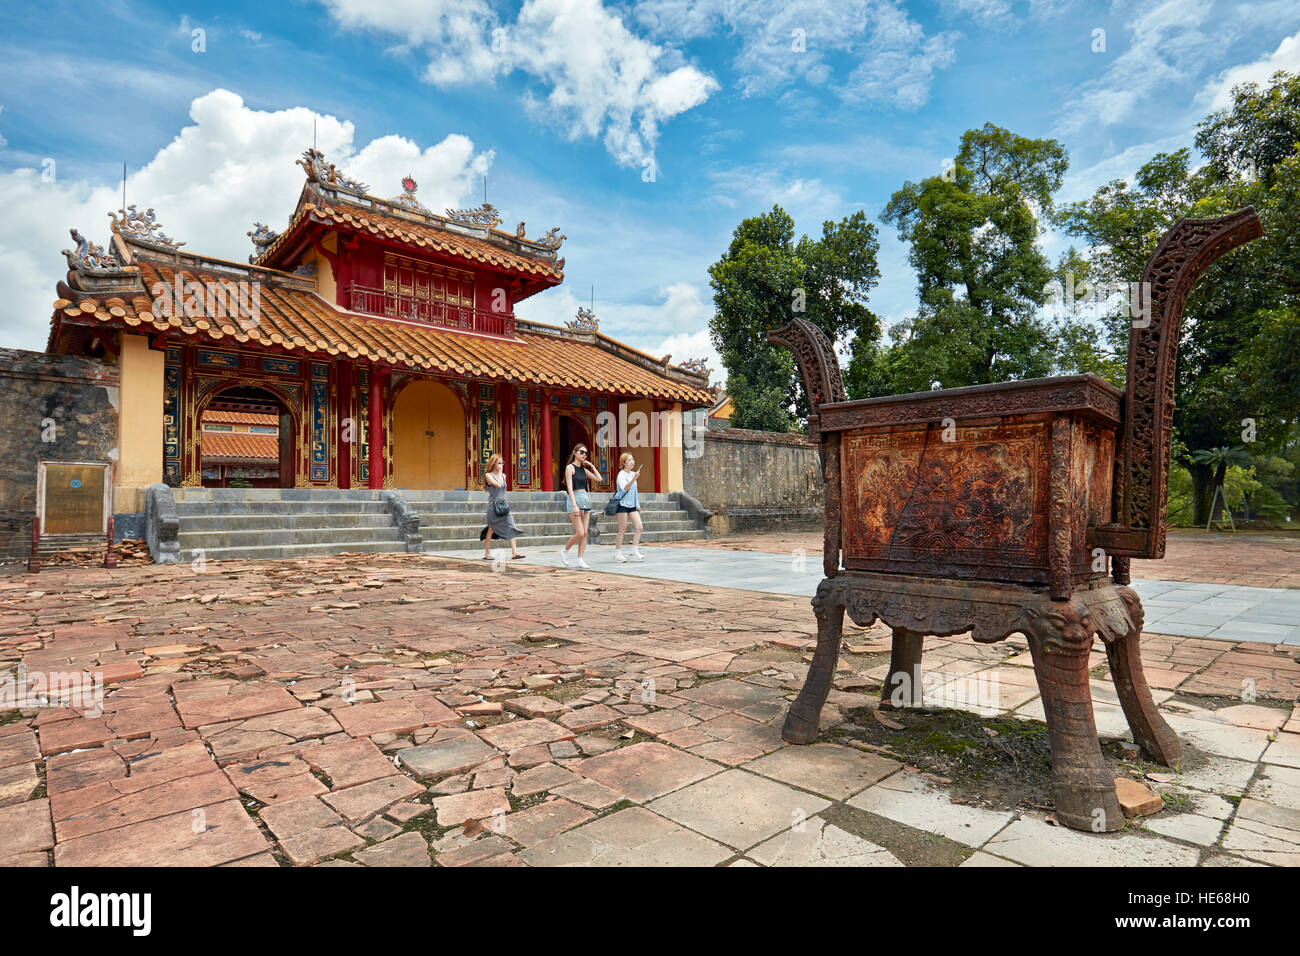 Hien Duc Gate at the Tomb of Minh Mang (Hieu Tomb). Hue, Vietnam. - Stock Image